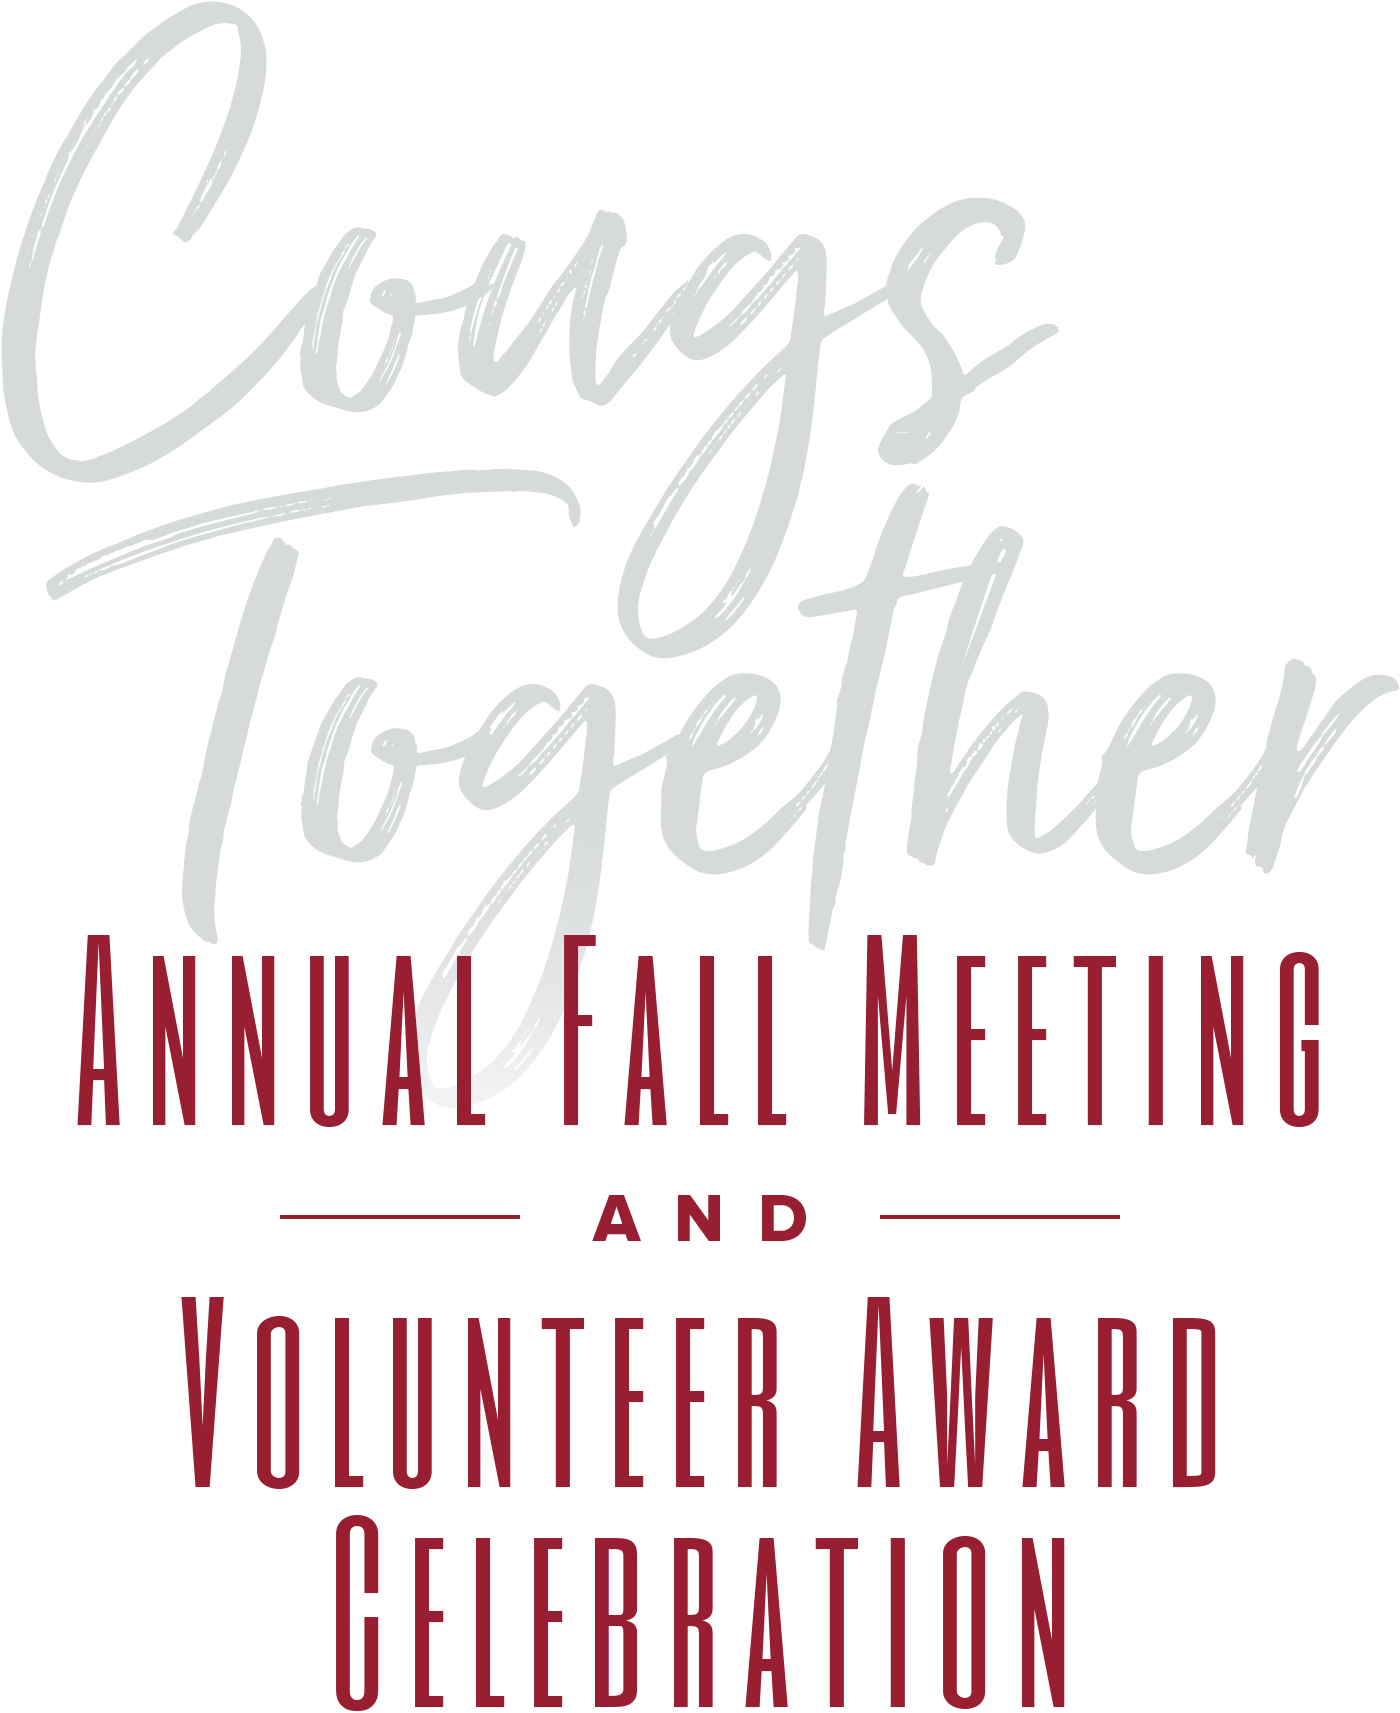 Annual Fall Meeting and Volunteer Awards Ceremony.